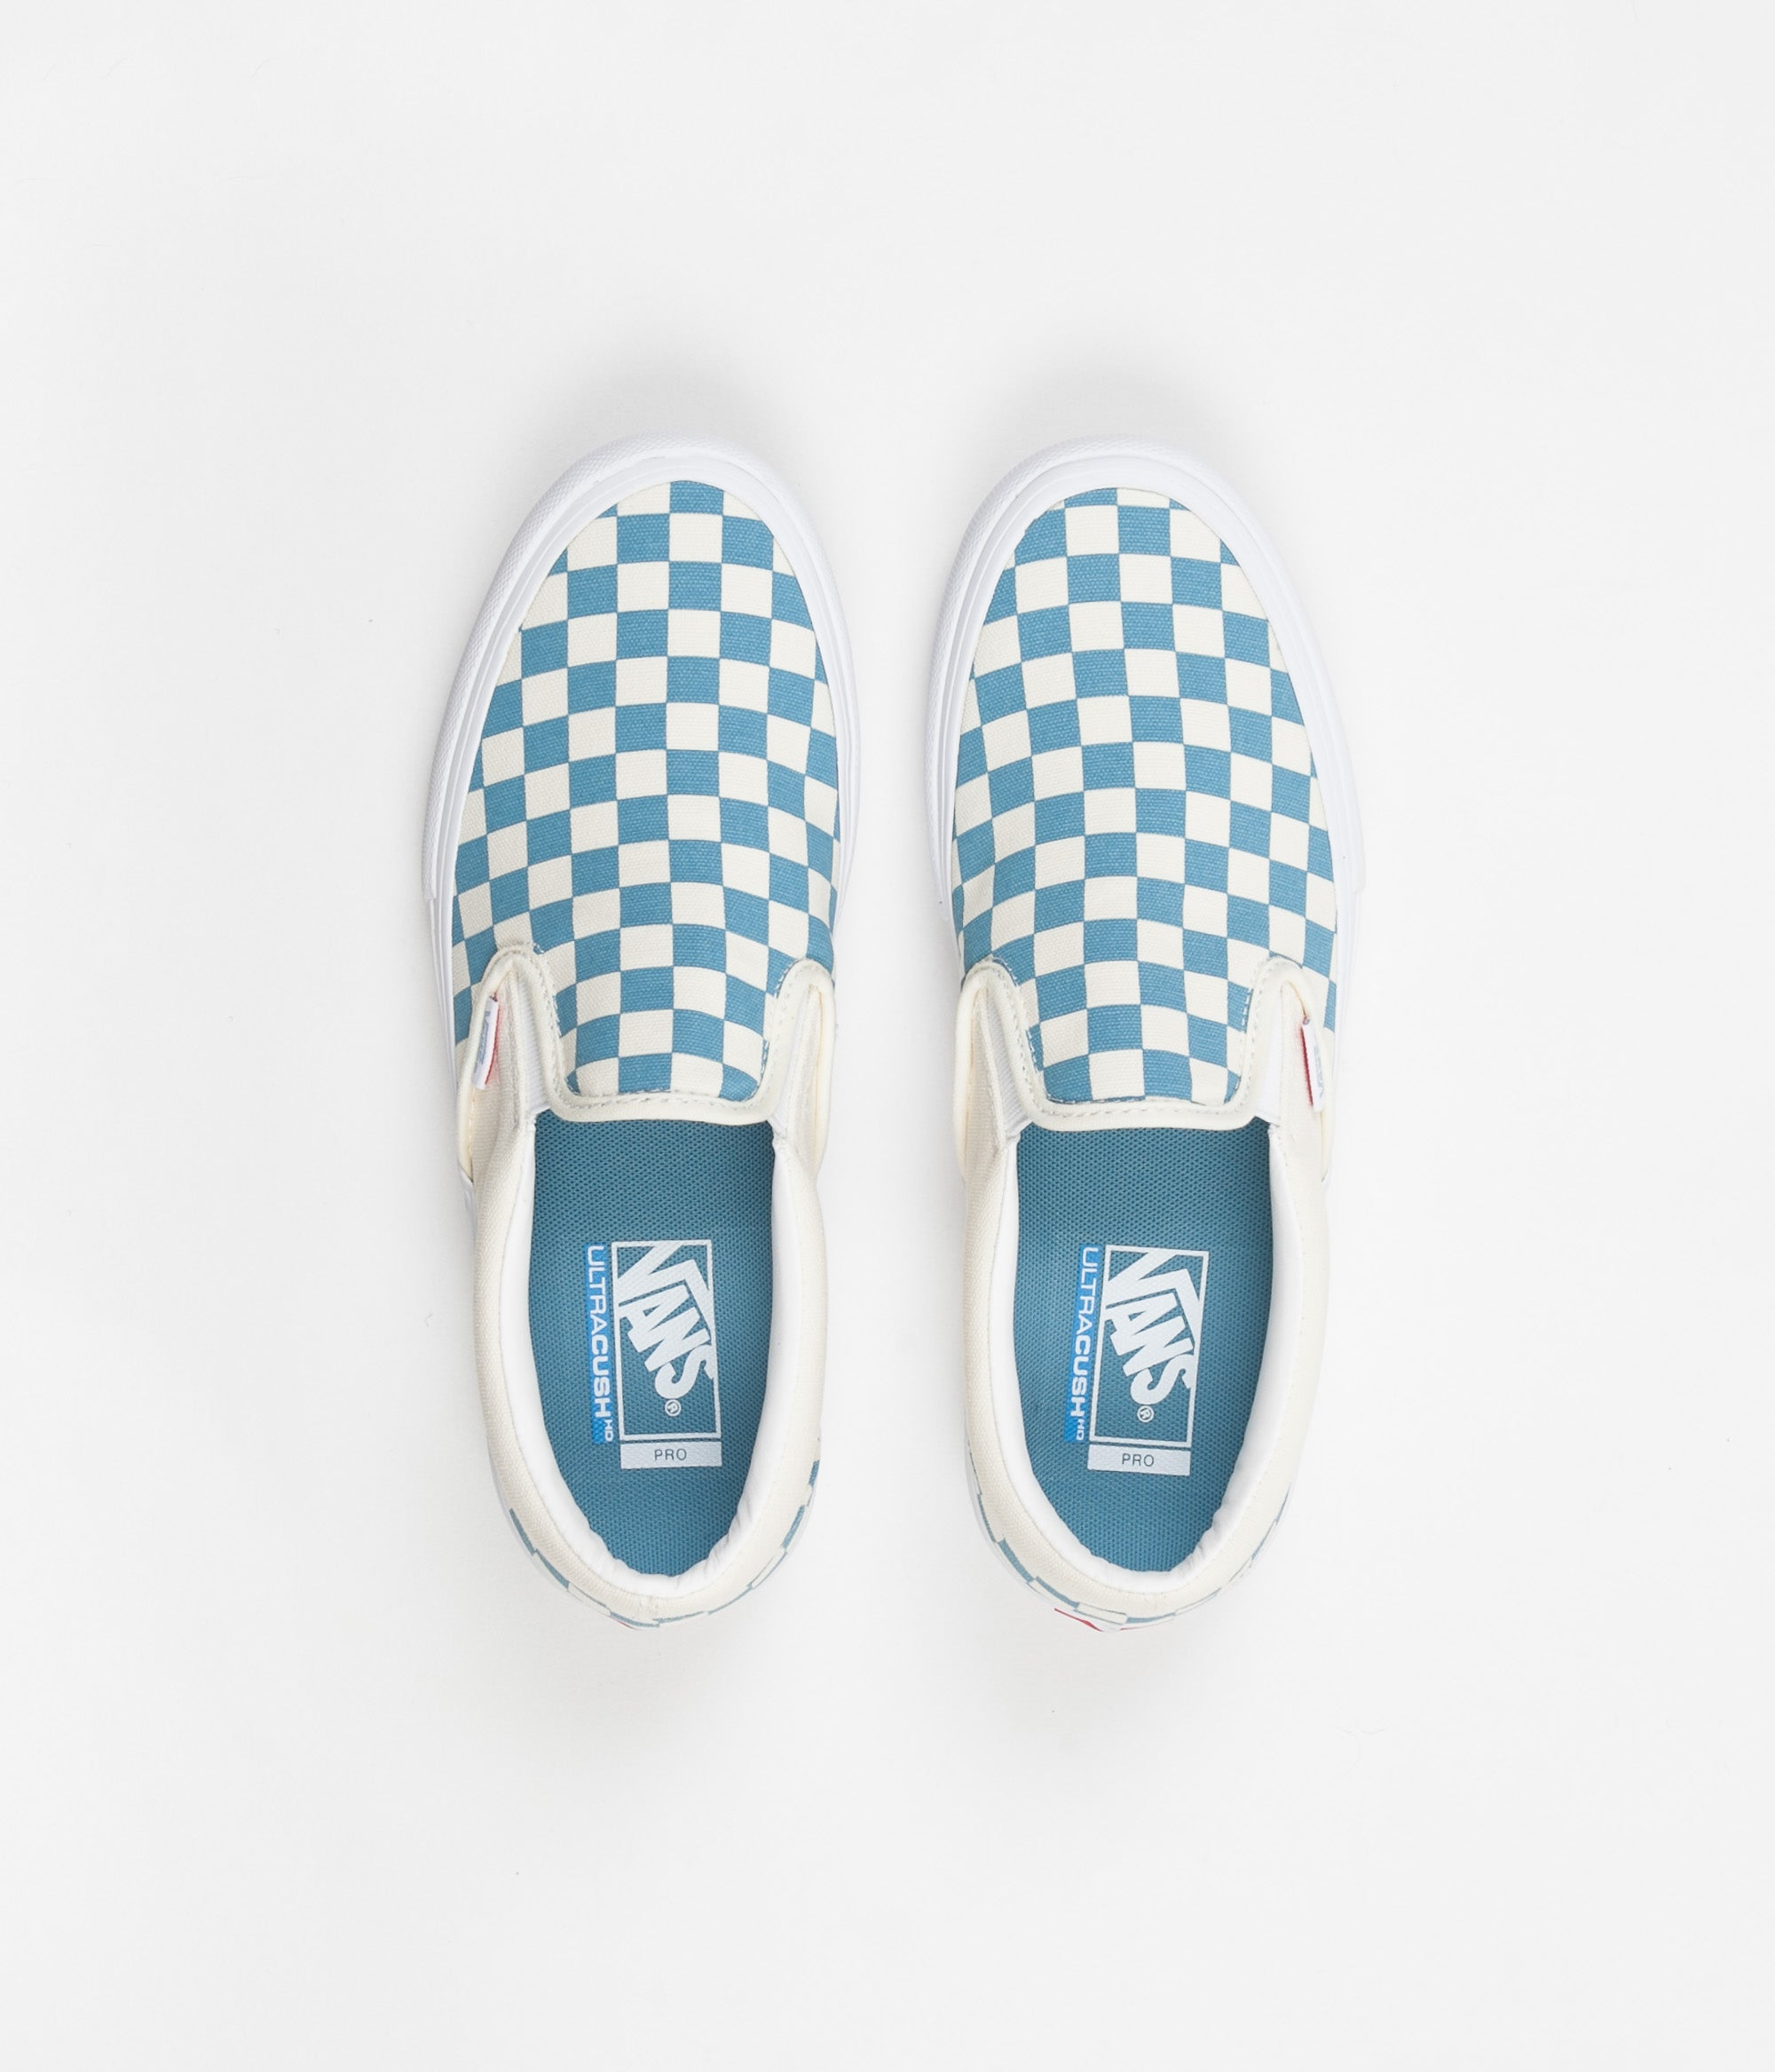 4cbf7a3b8f Vans Slip On Pro Checkerboard Shoes - Adriatic Blue   White ...